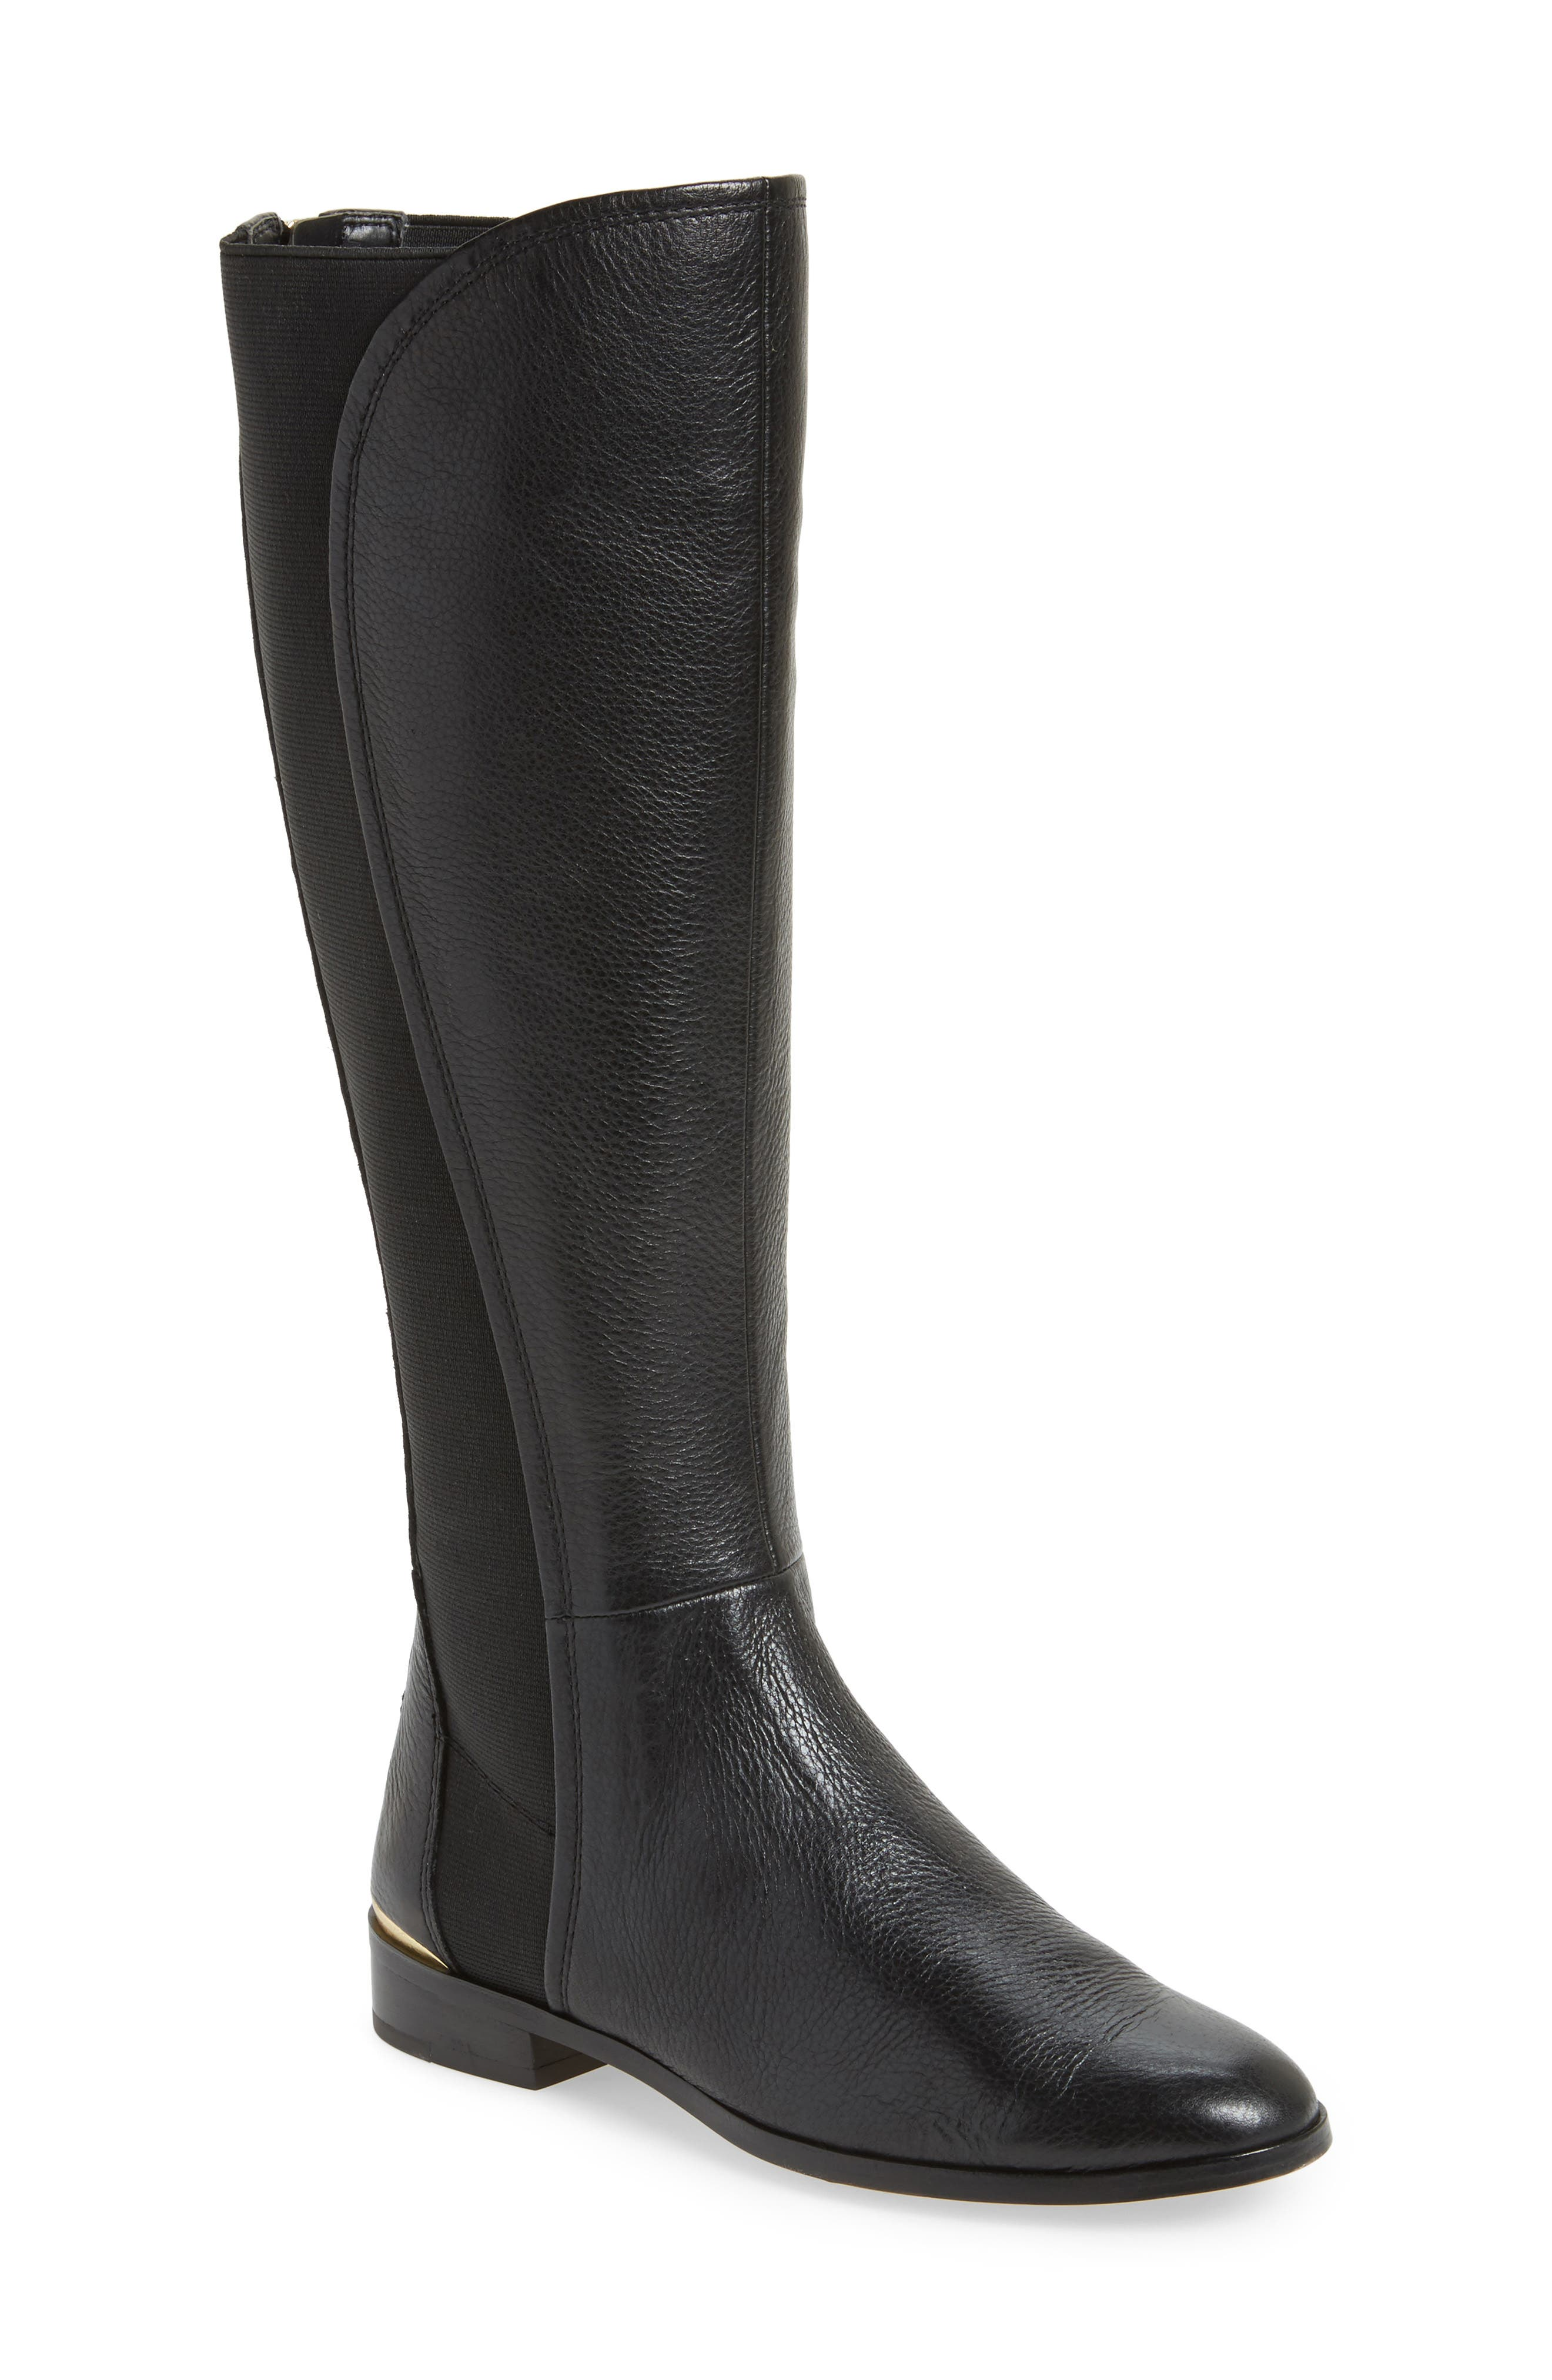 Vallery Elastic Back Knee High Boot,                             Main thumbnail 1, color,                             Black Nappa Leather